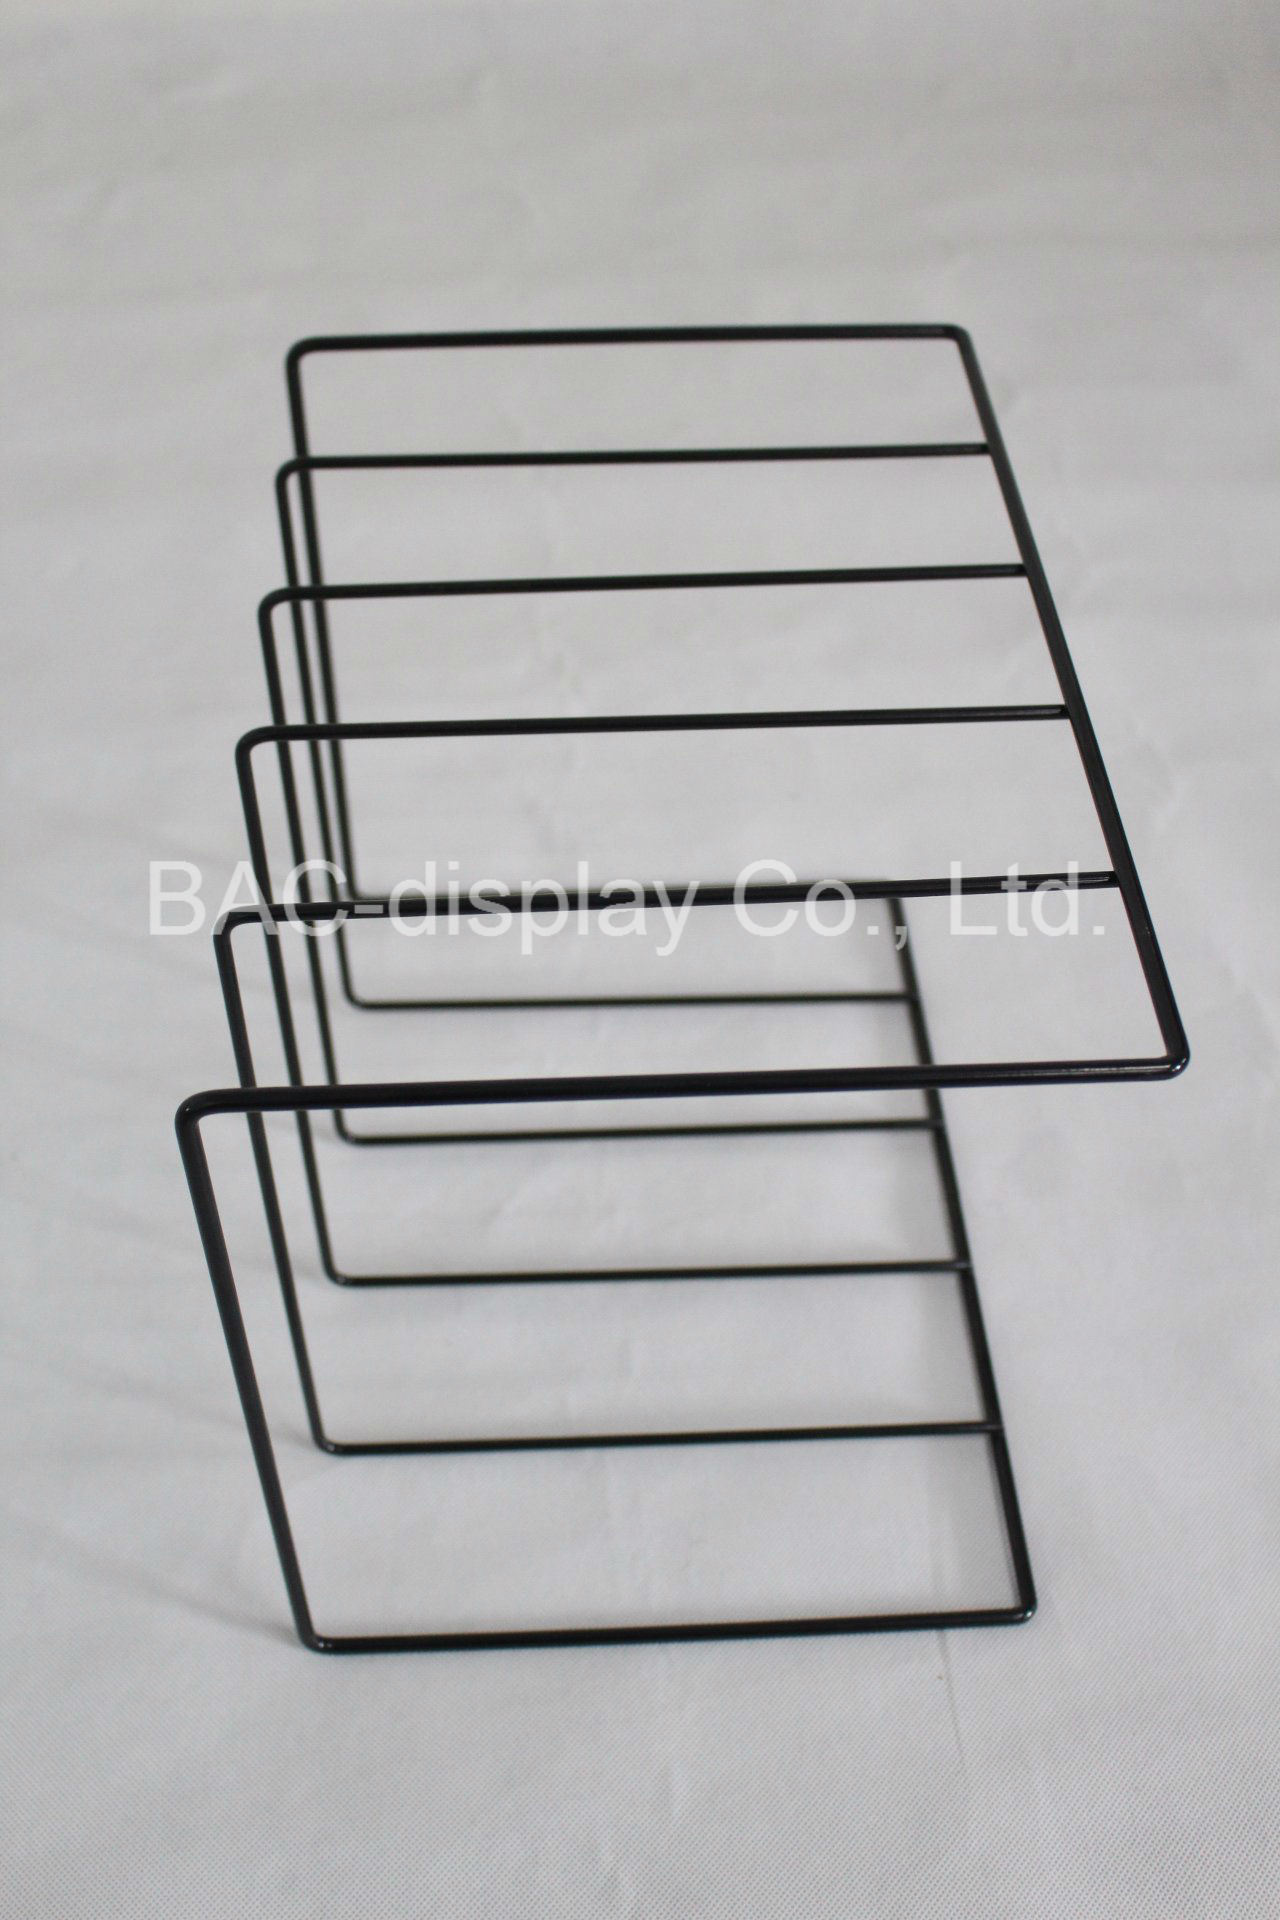 China Lightweight Assemblable Metal Wire Tabletop Books Shelf ...